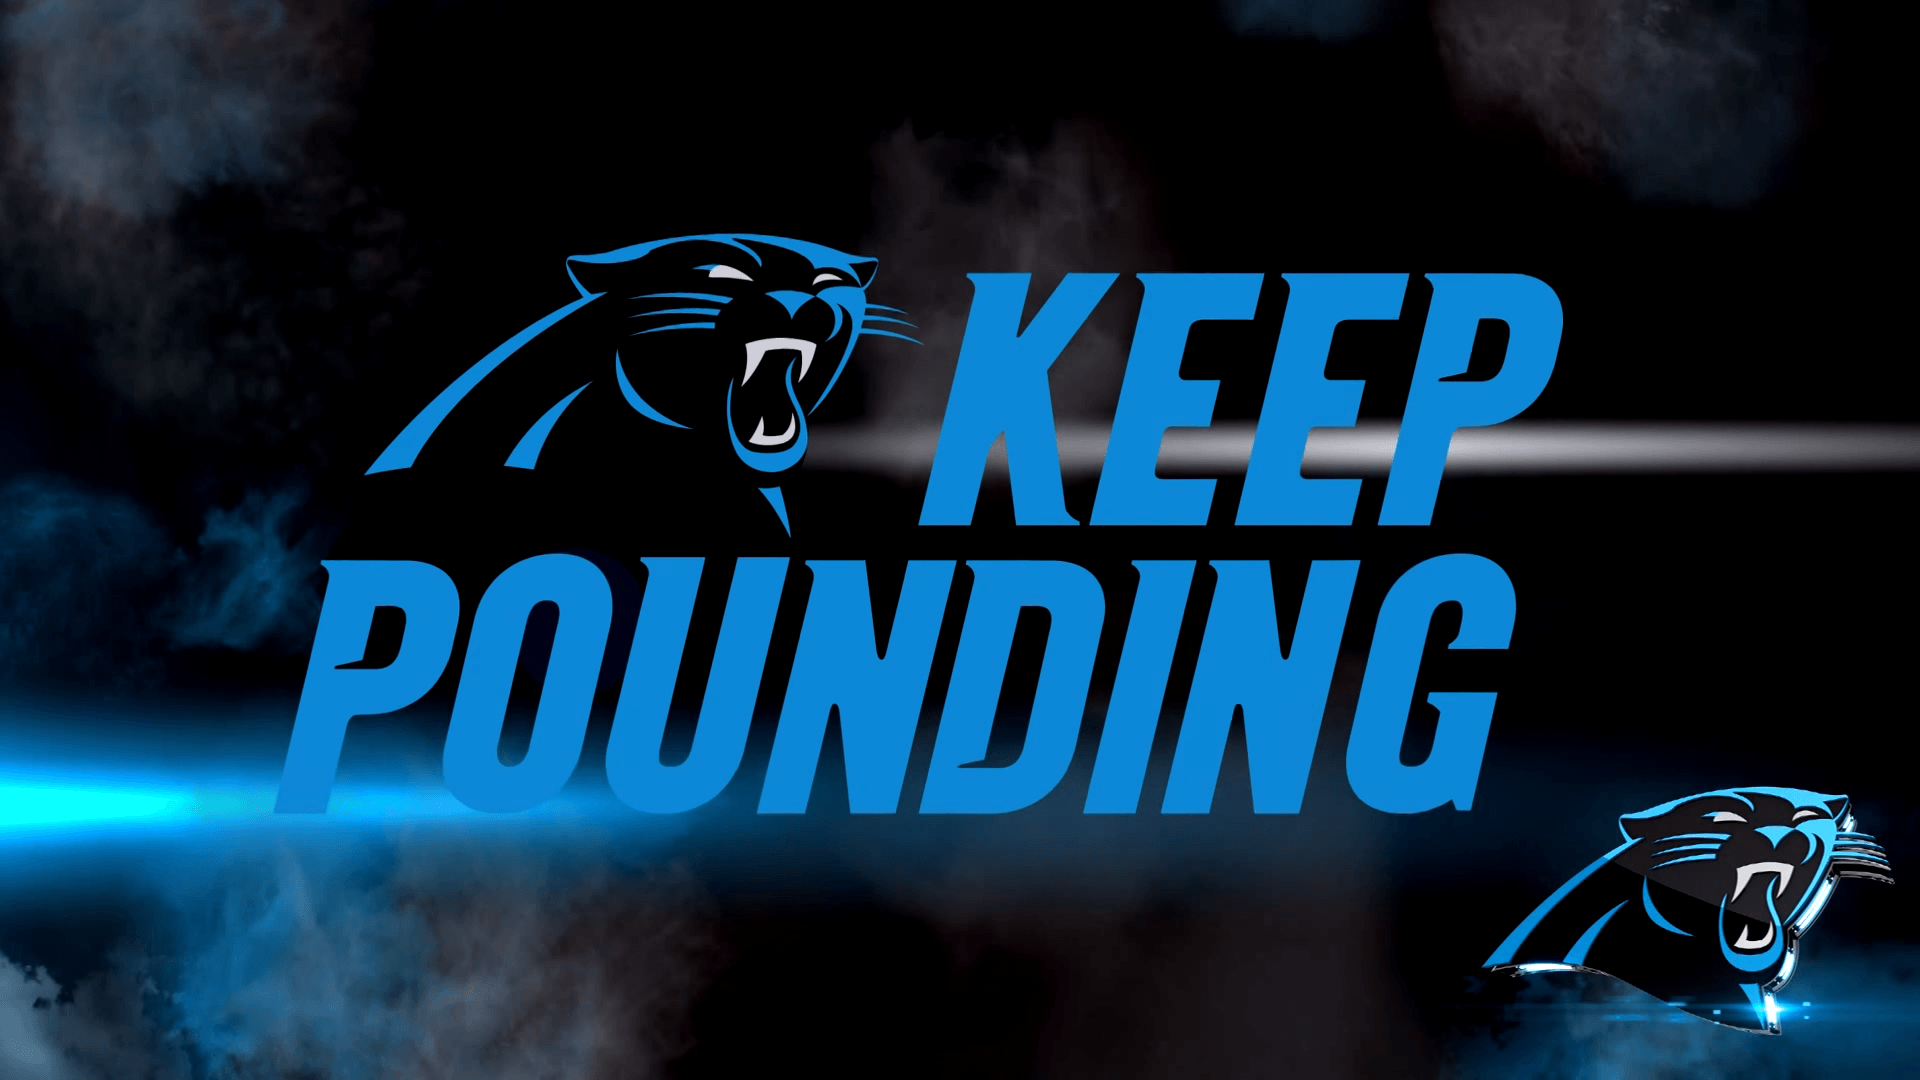 Panthers Wallpapers Wallpaper Cave